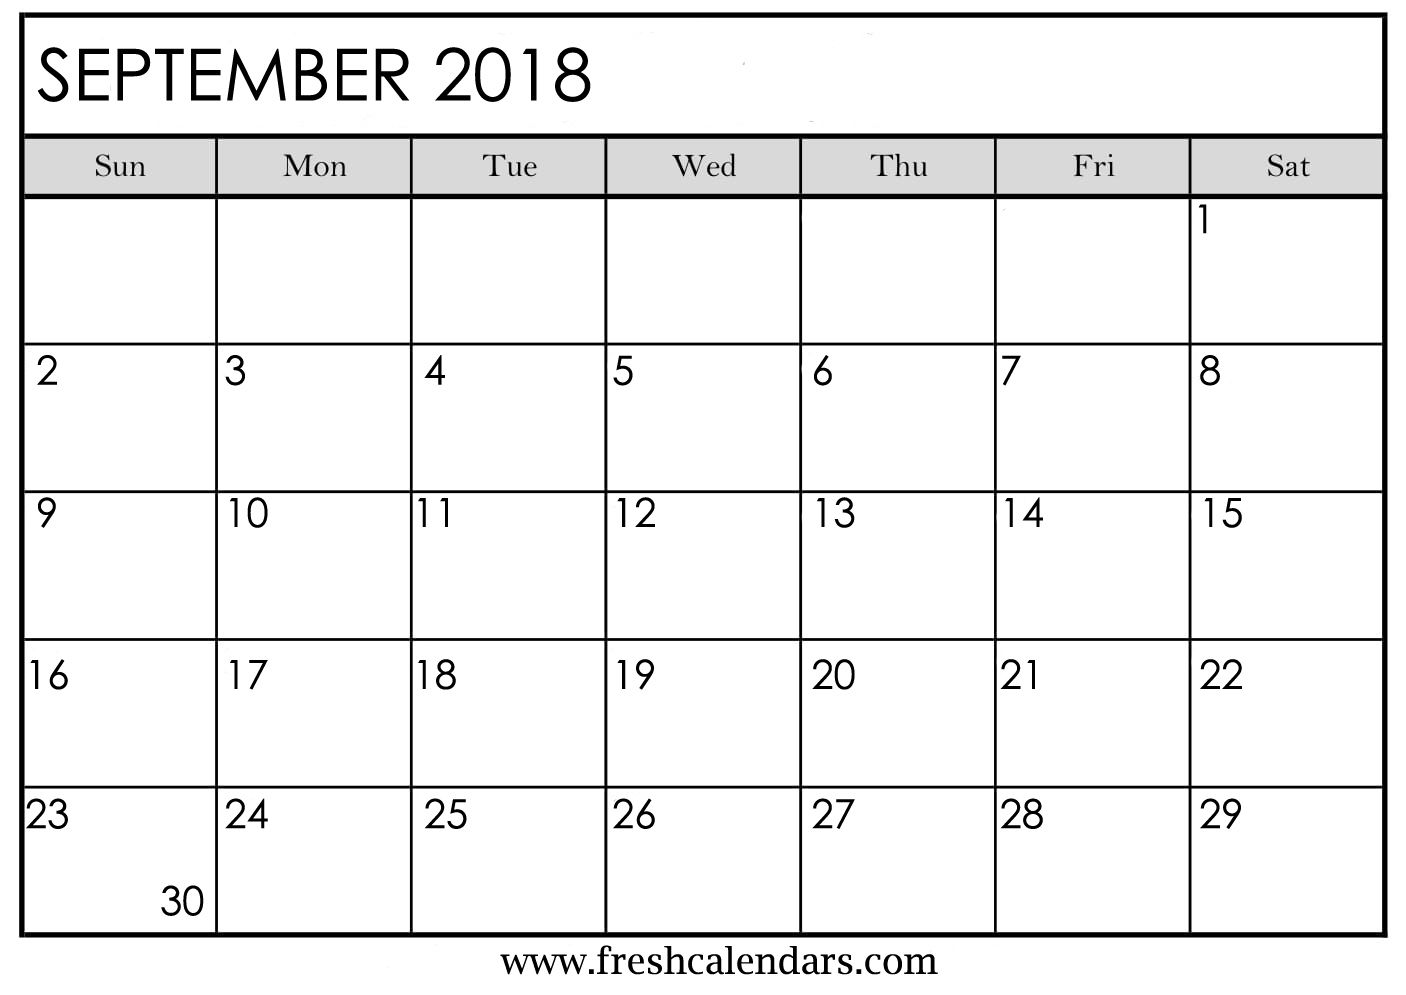 photo about September Printable Calendar known as September 2018 Calendar Printable - Refreshing Calendars